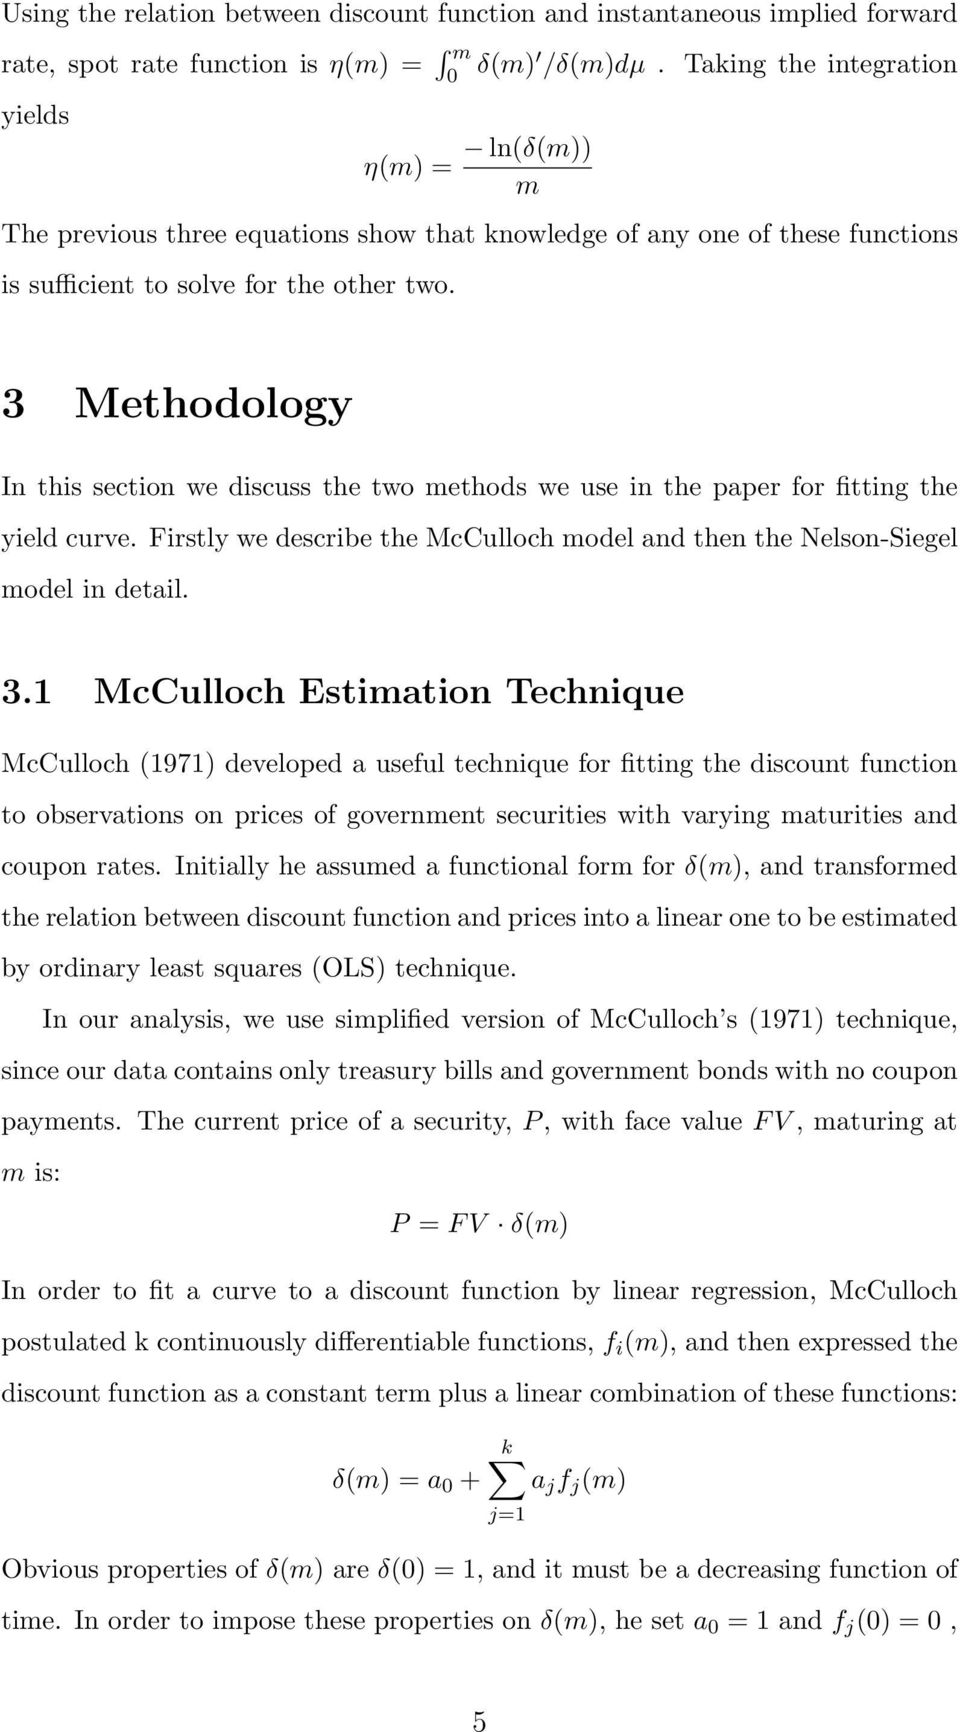 3 Methodology In this section we discuss the two methods we use in the paper for fitting the yield curve. Firstly we describe the McCulloch model and then the Nelson-Siegel model in detail. 3.